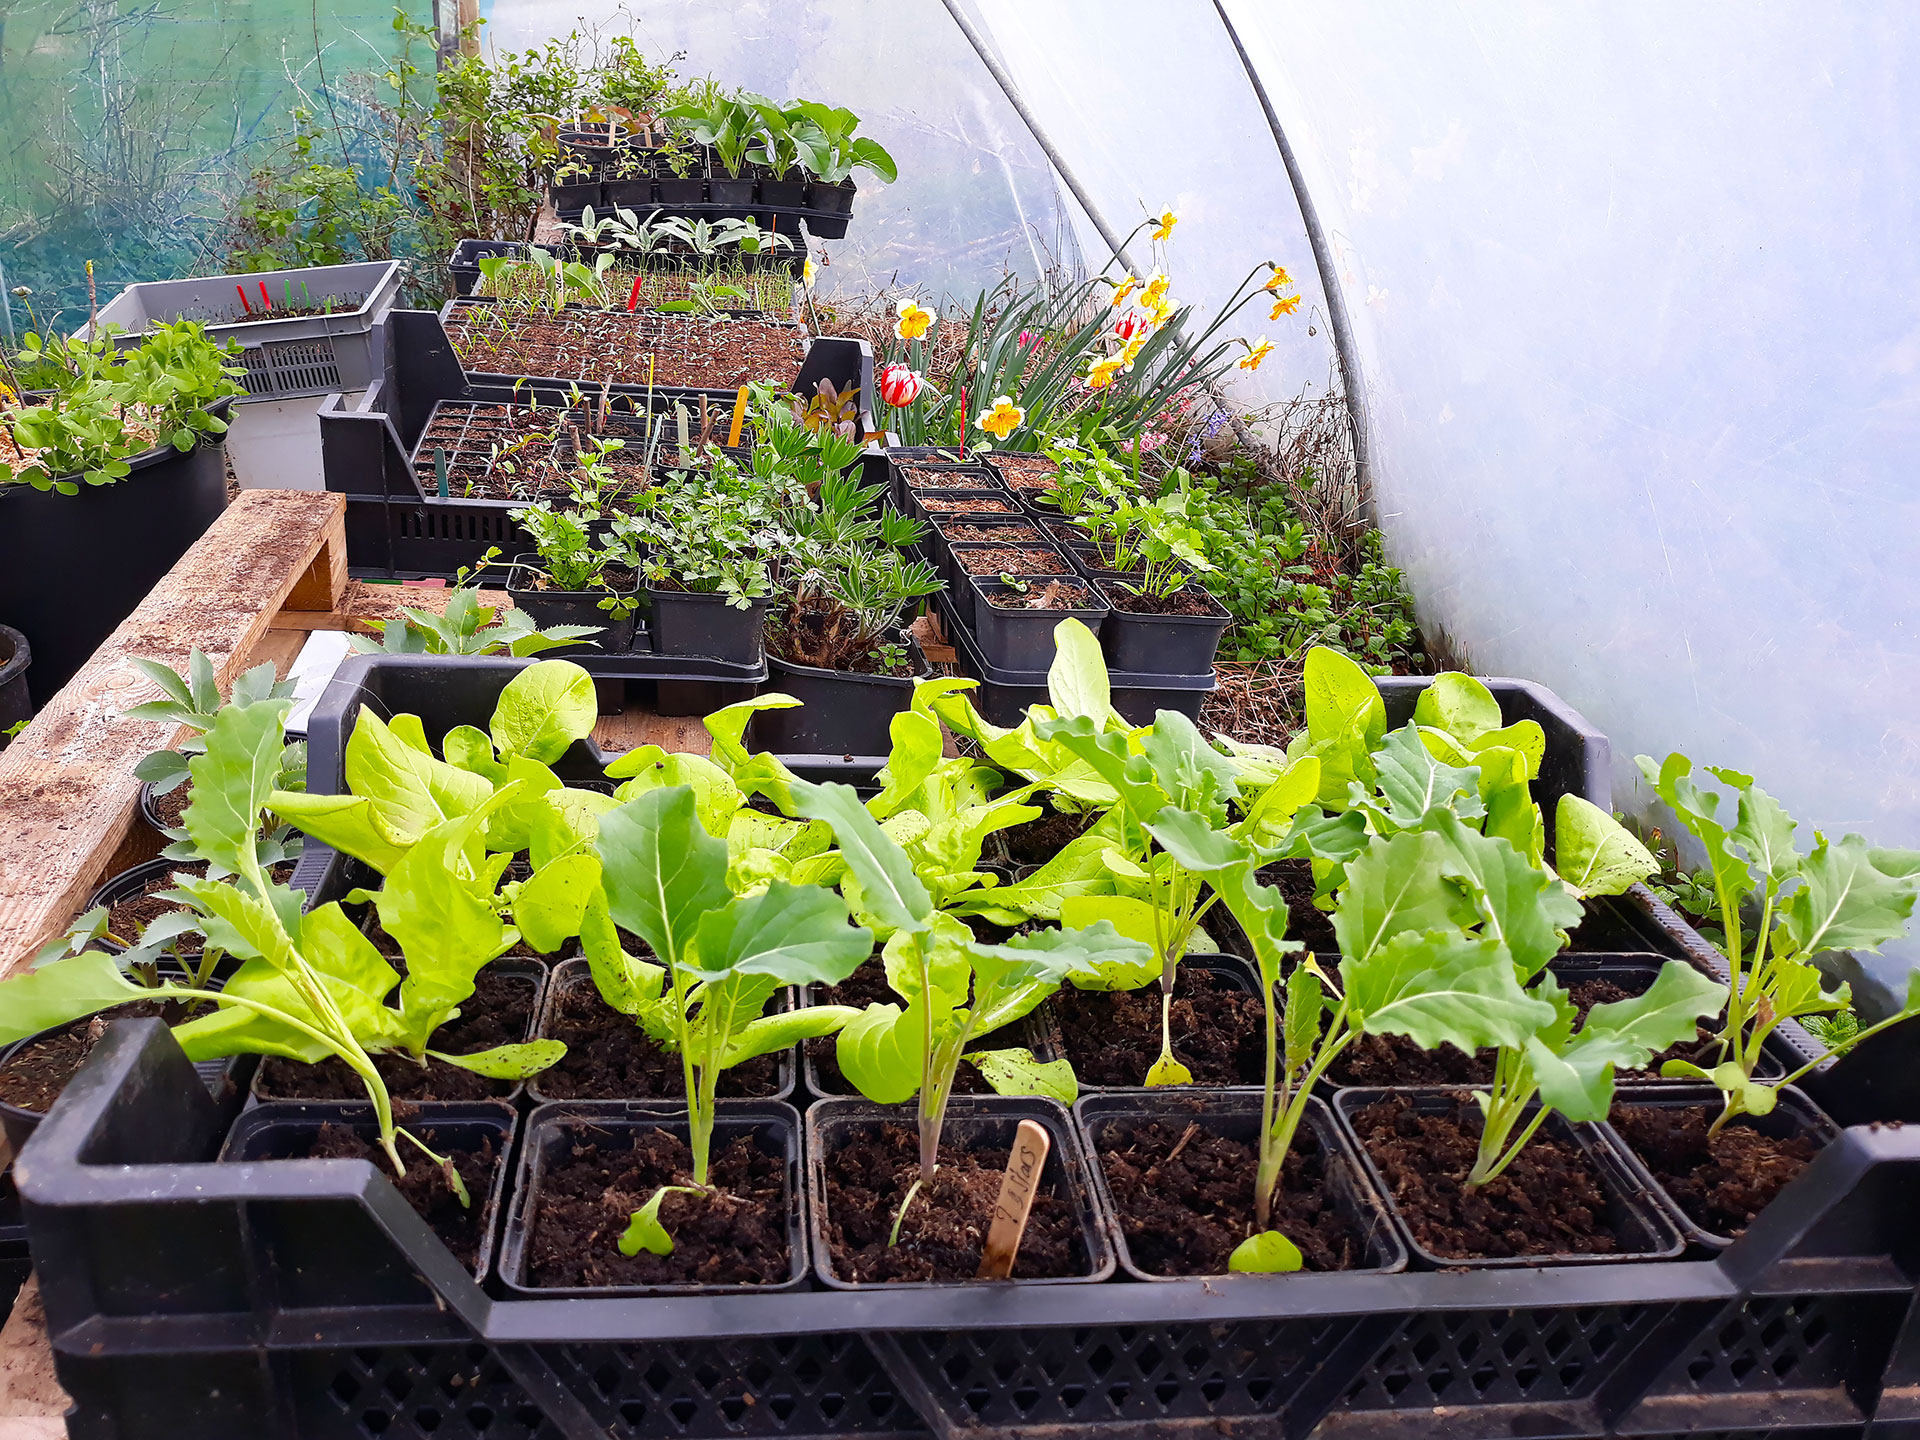 Learn about Polytunnels at Dunmore Country School